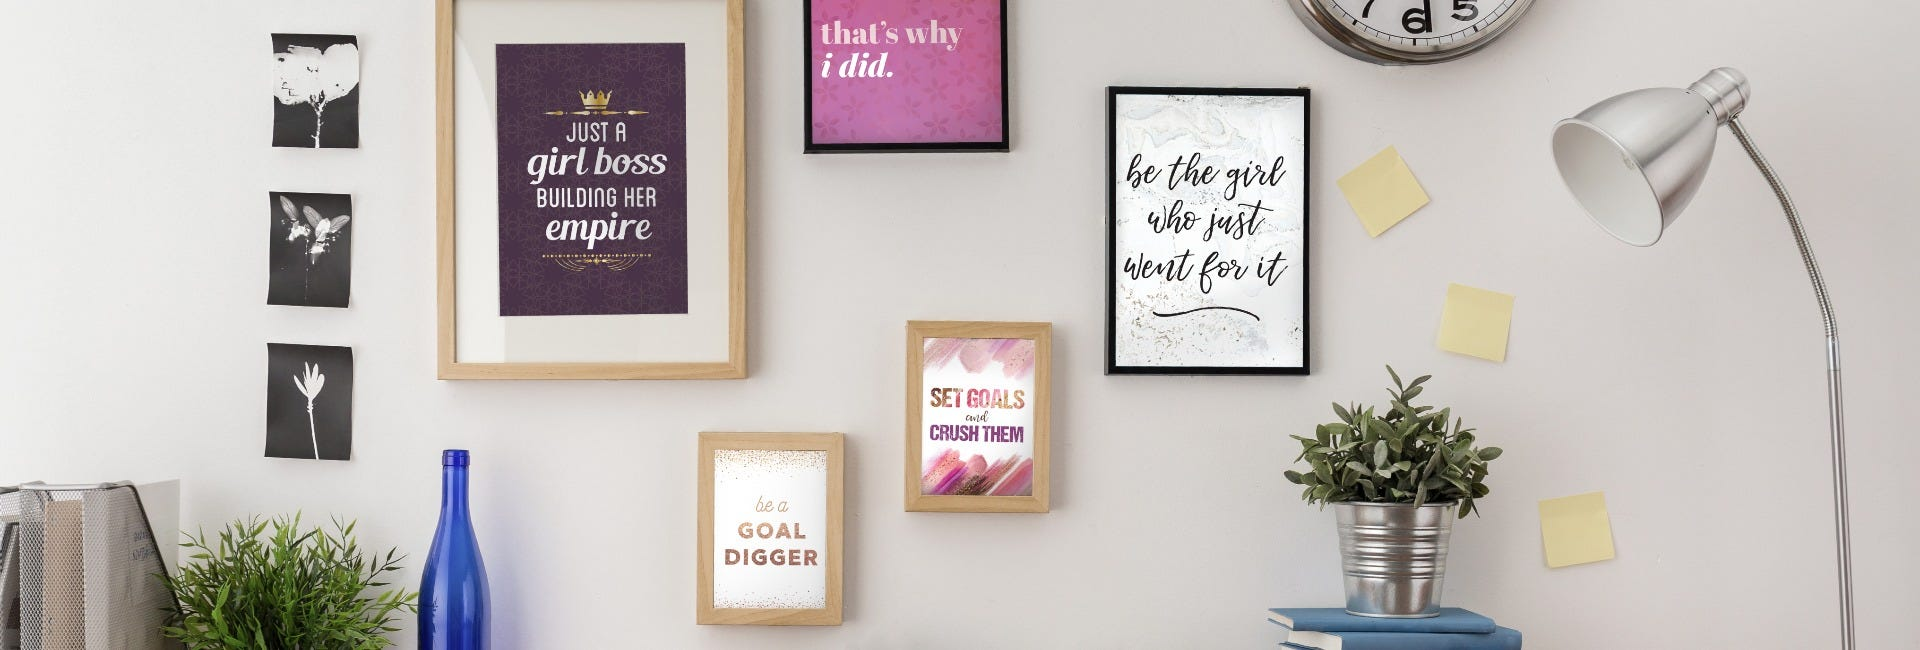 Celebrate Being a #GirlBoss With Free Printables